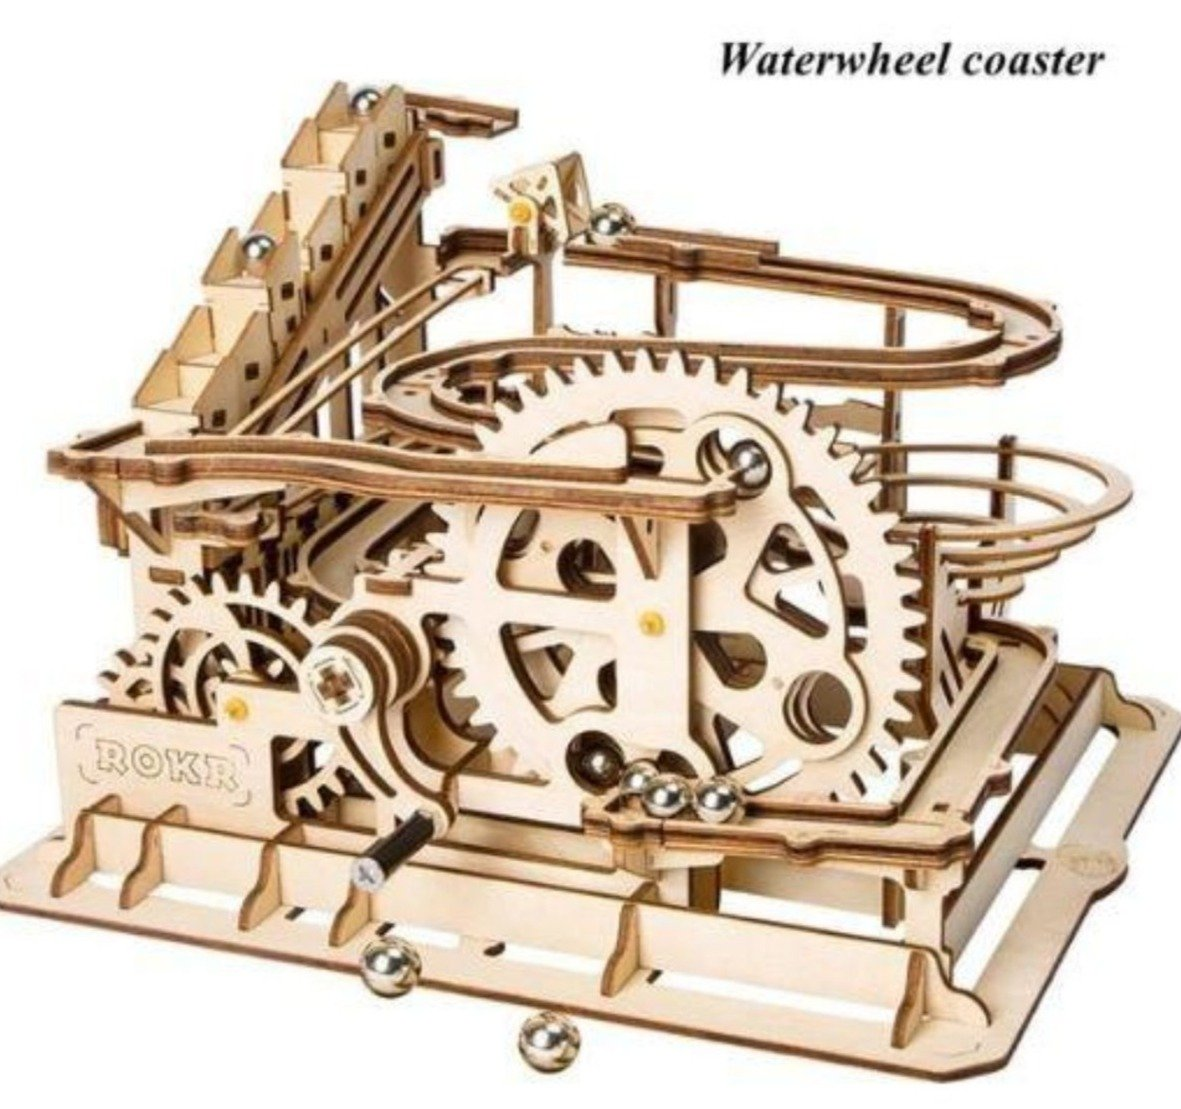 Wooden Marble Racer Run Model Kit Fuego Cloud - Waterwheel